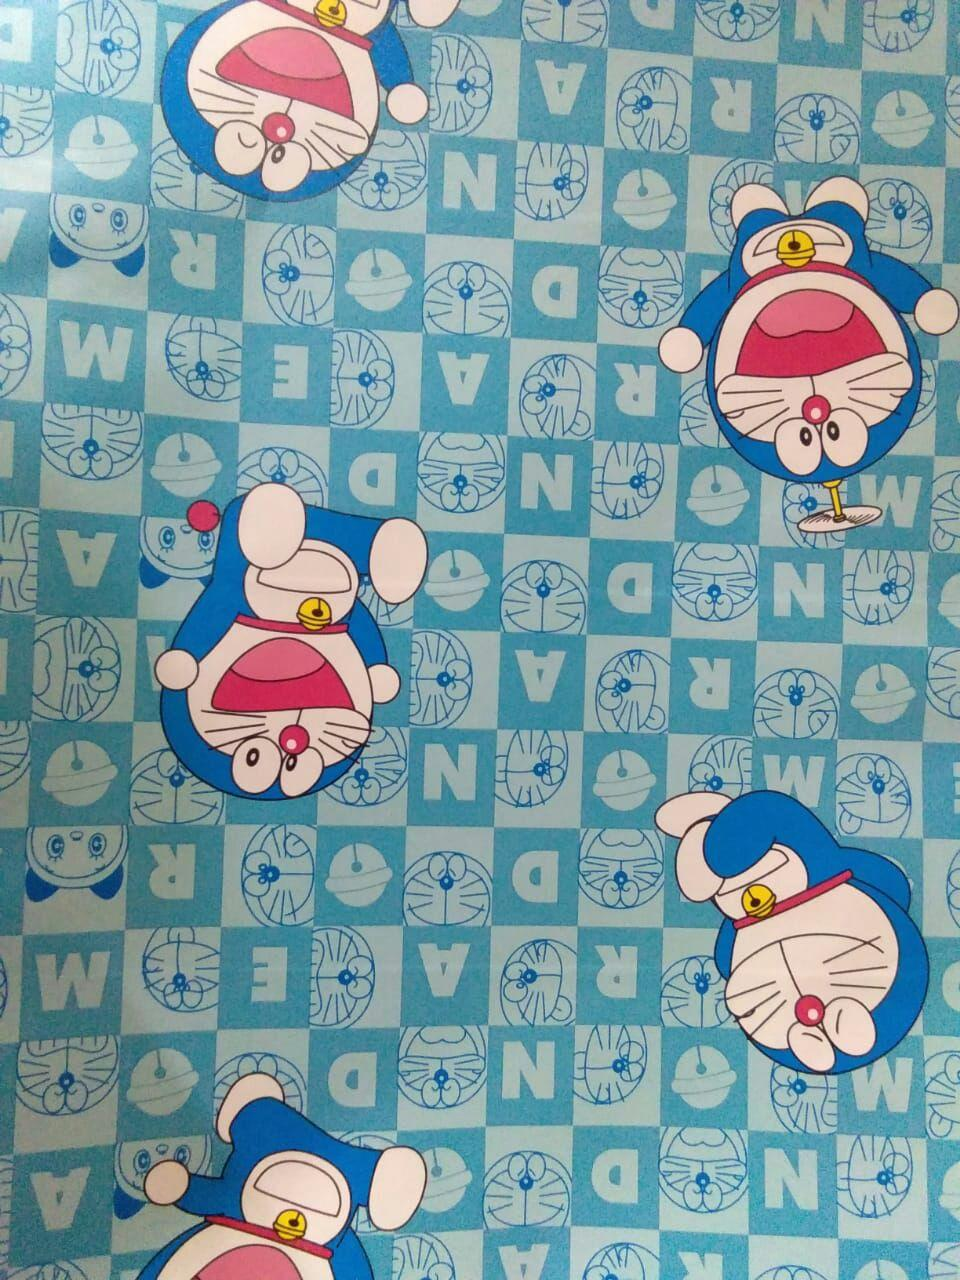 Stiker Wallpaper Dinding - Elegant Wallpaper Sticker (Size 45cm X 10M) - Doraemon